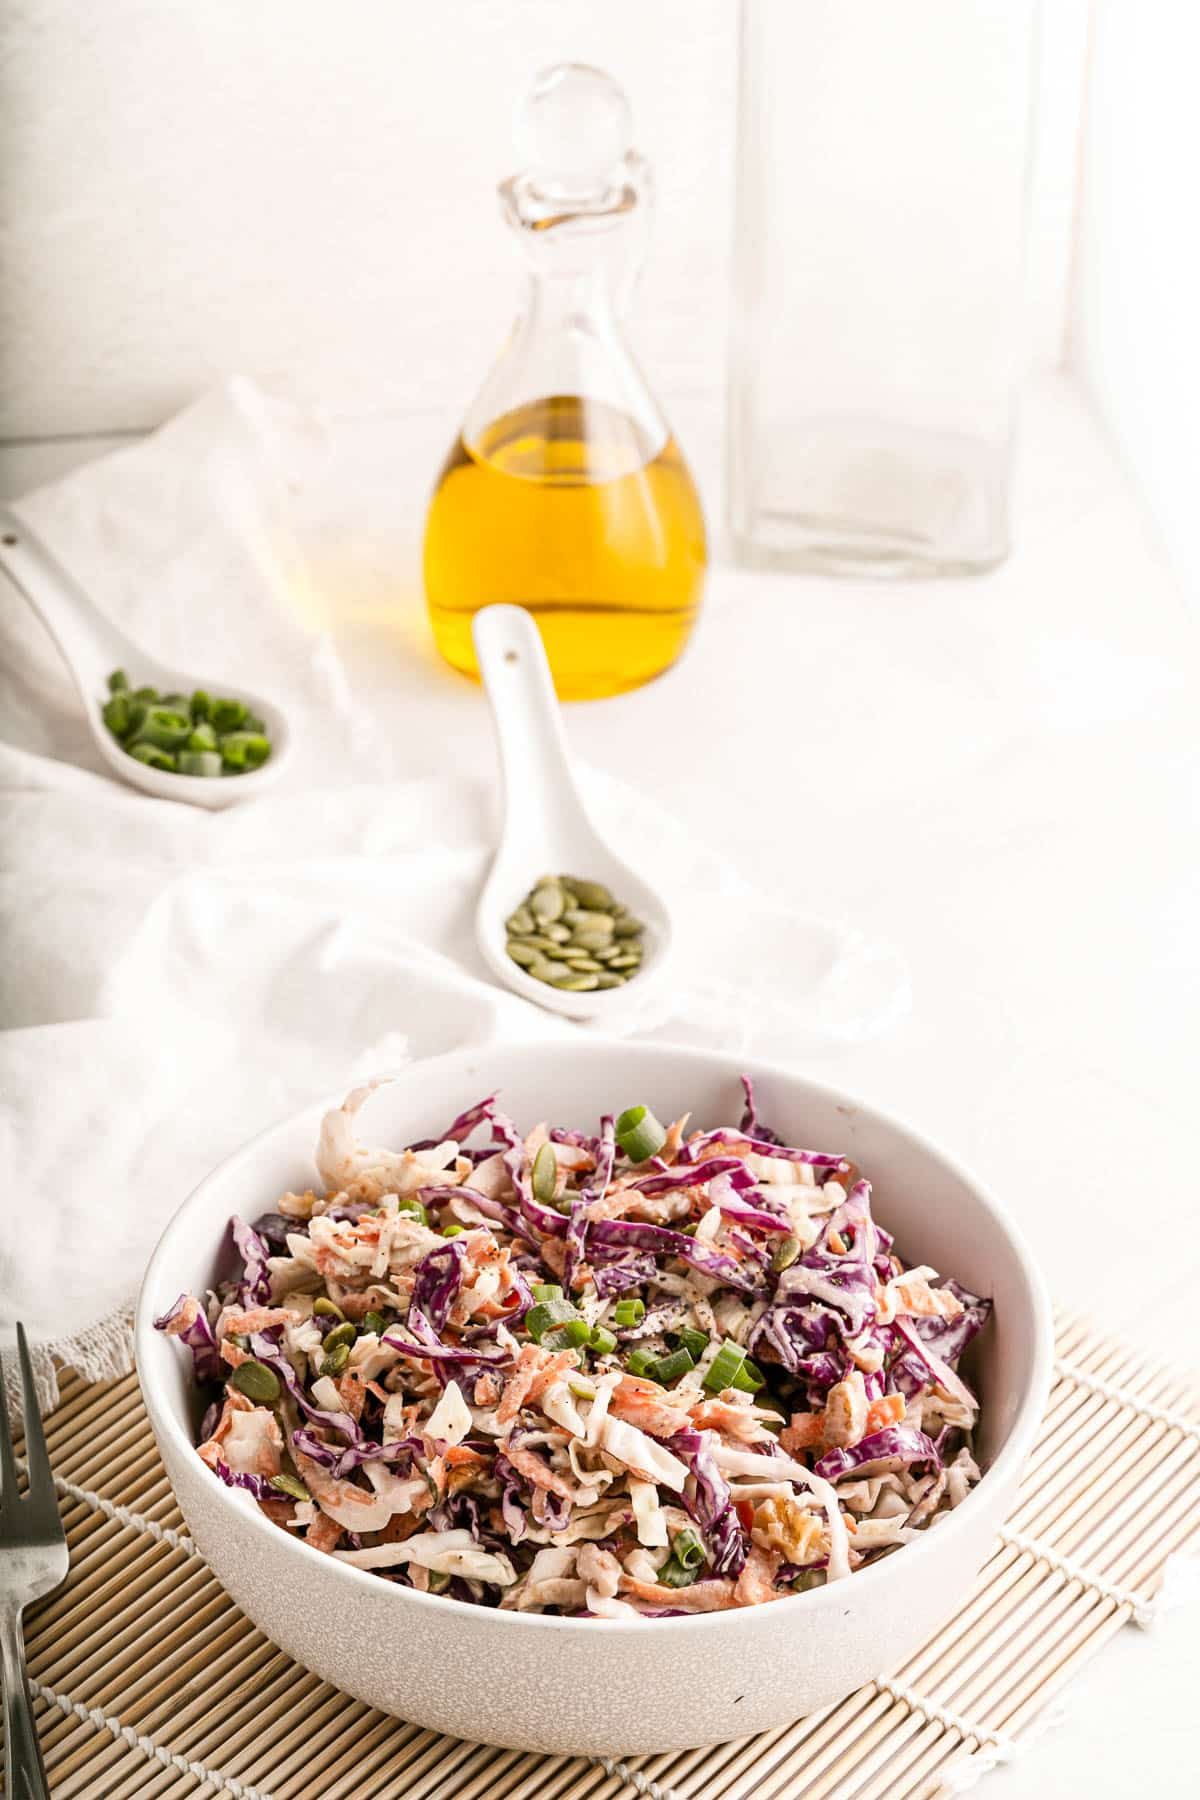 coleslaw in a bowl on a bamboo mat with seeds